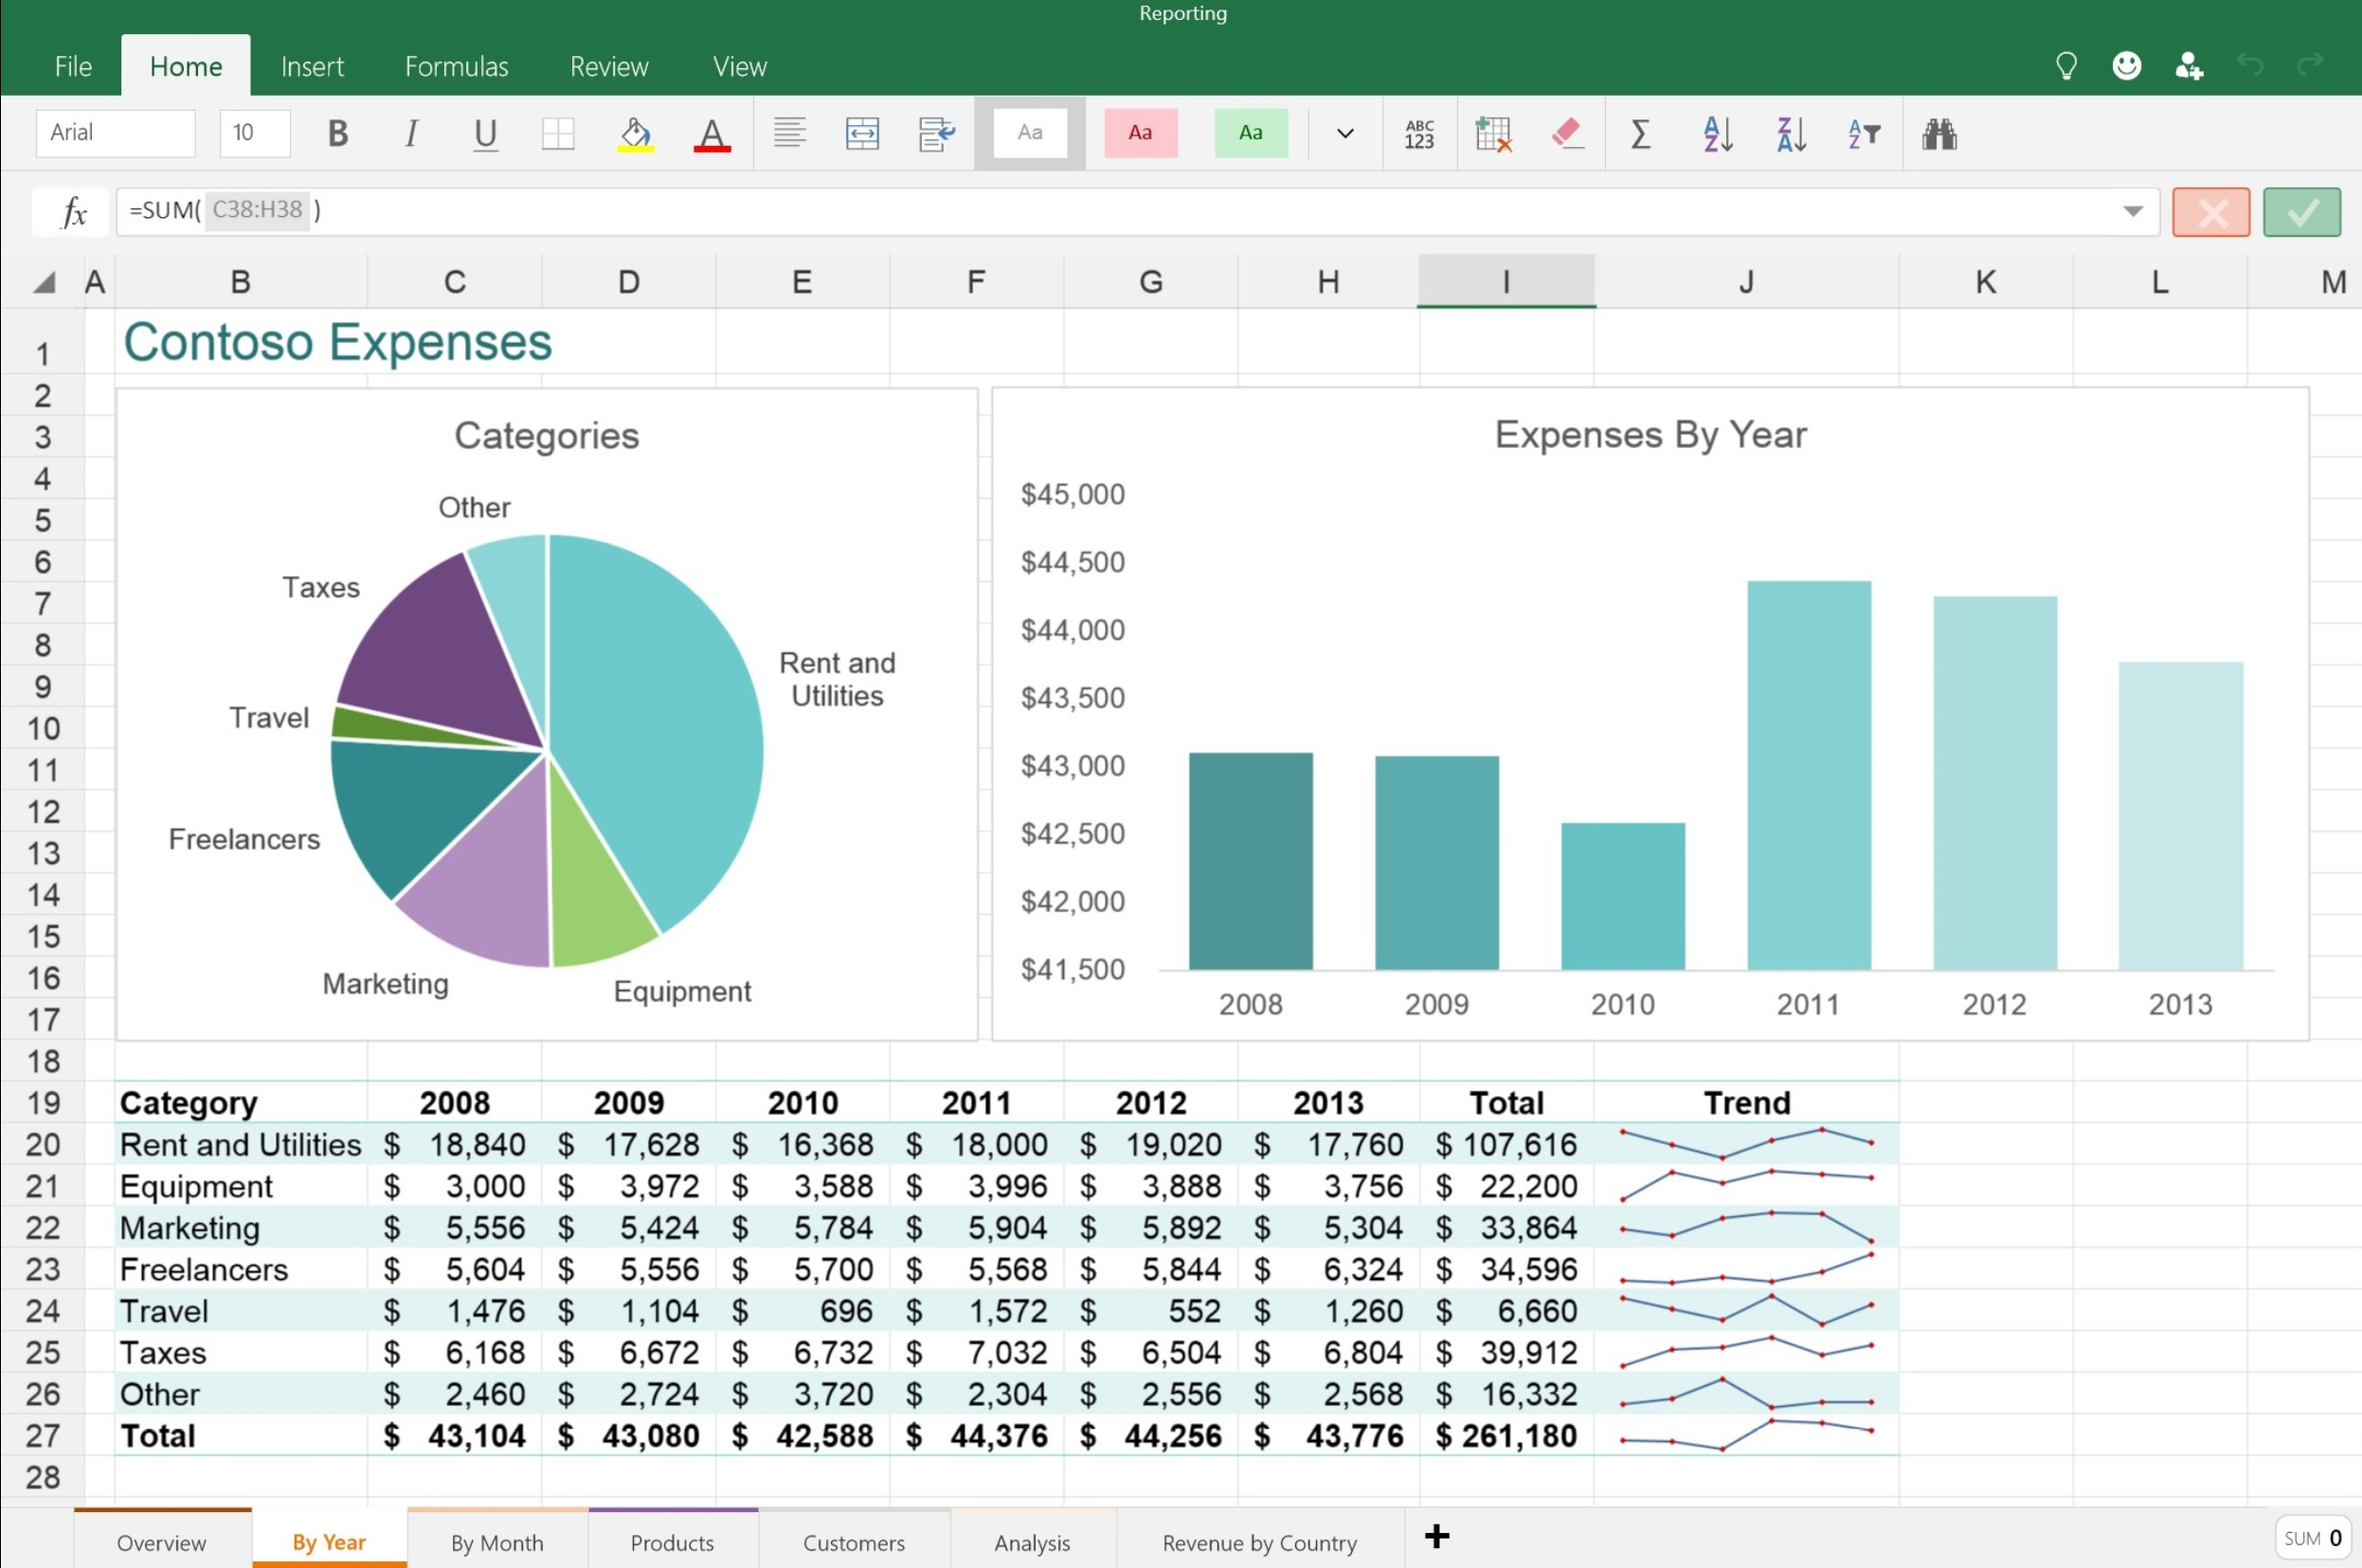 Ediblewildsus  Pleasing Features Available In The New Word Excel And Powerpoint Apps For  With Marvelous Excel Touch App  With Beauteous Sample Variance Excel Also Bar Graphs In Excel In Addition Create Line Graph In Excel And Excel Diff As Well As Excel Jokes Additionally How To Make A Scatter Plot In Excel  From Mspowerusercom With Ediblewildsus  Marvelous Features Available In The New Word Excel And Powerpoint Apps For  With Beauteous Excel Touch App  And Pleasing Sample Variance Excel Also Bar Graphs In Excel In Addition Create Line Graph In Excel From Mspowerusercom